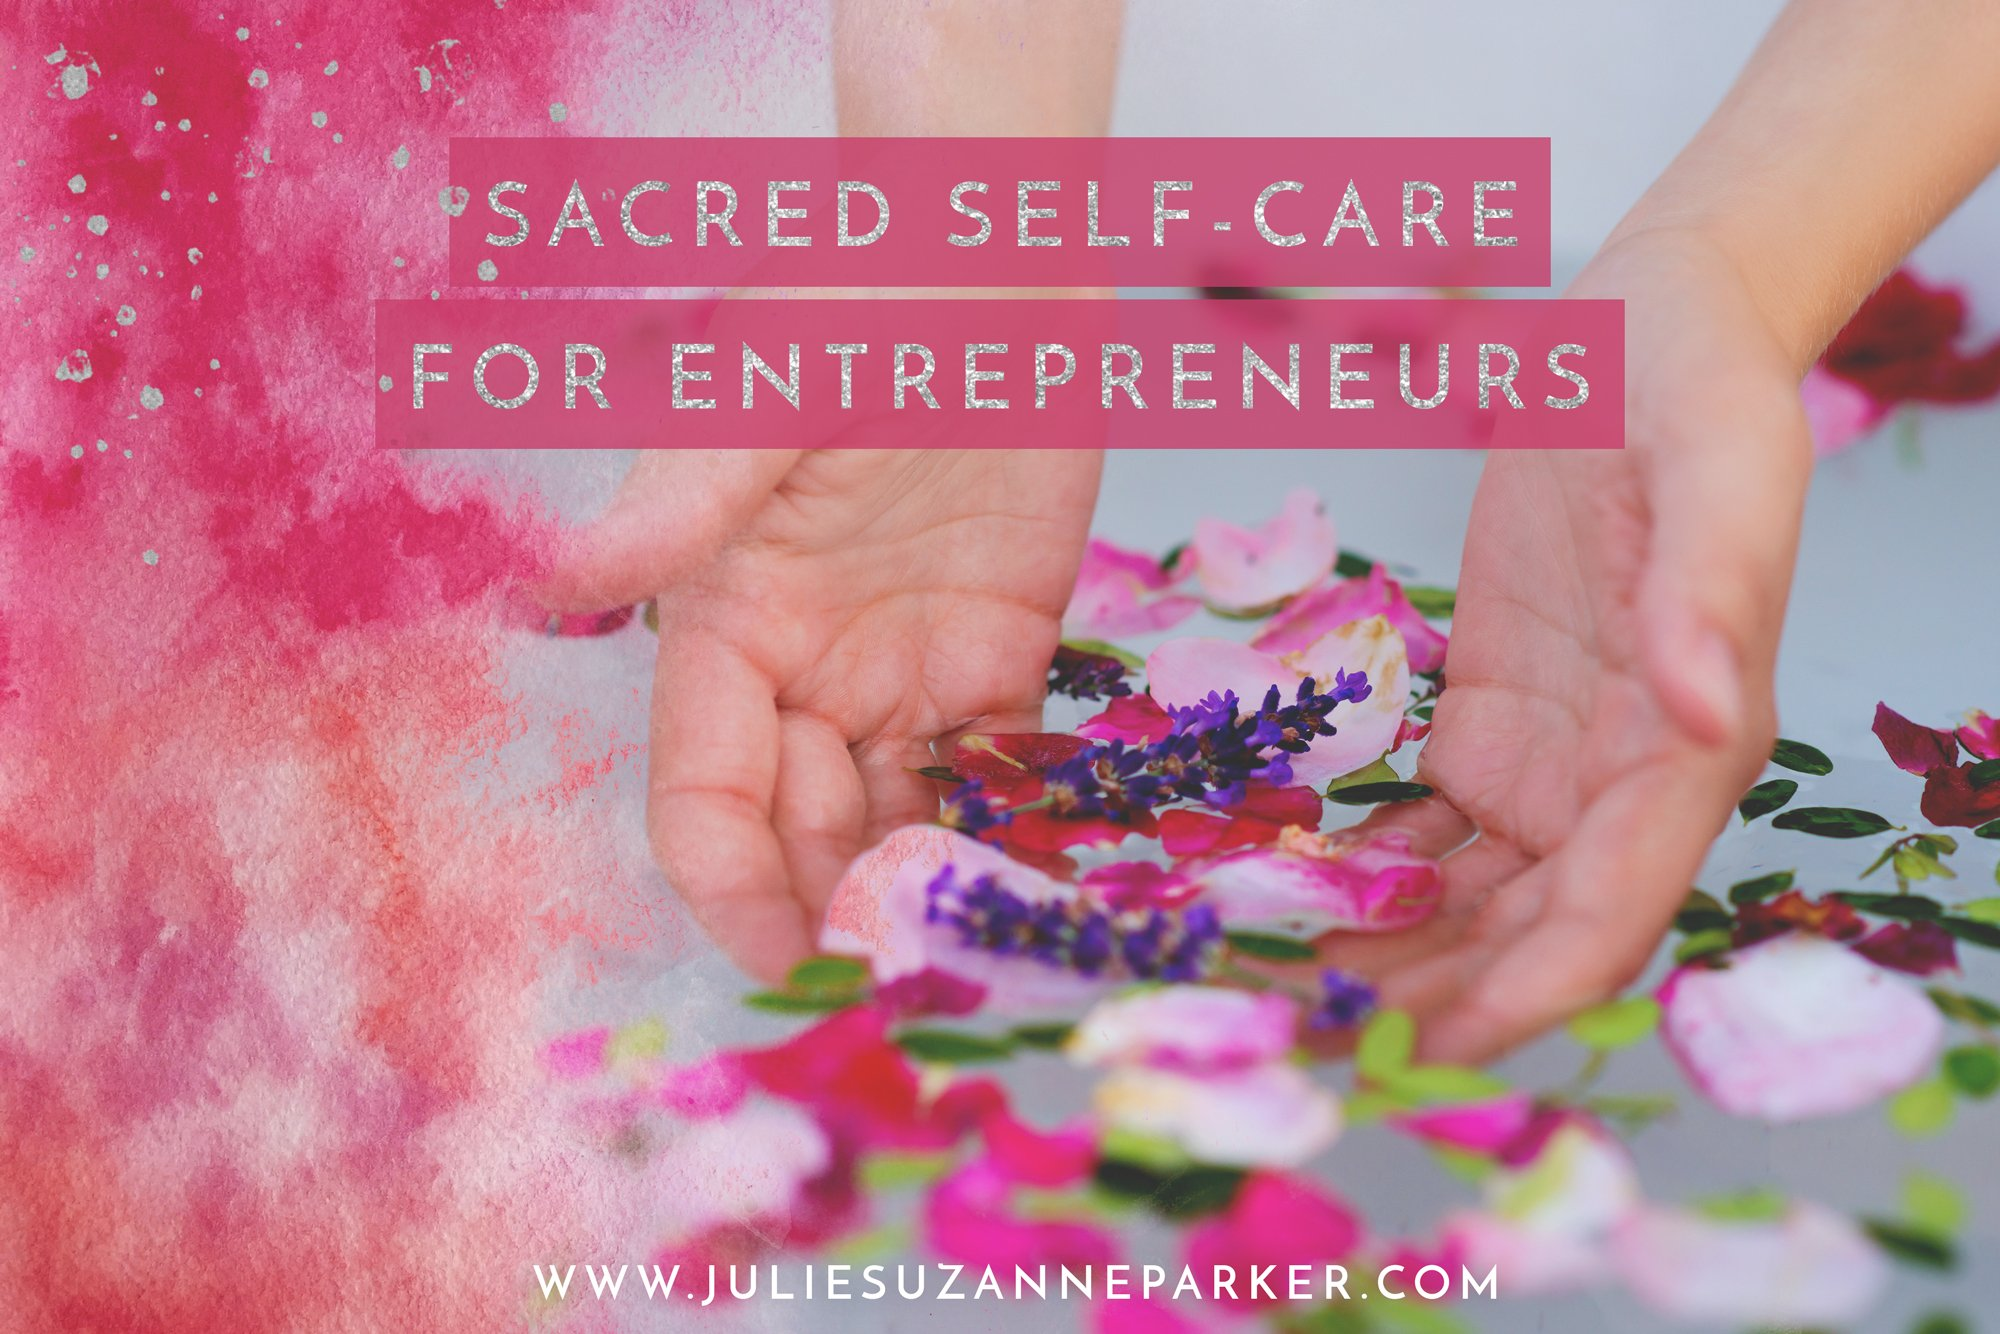 Sacred Self-Care for Entrepreneurs